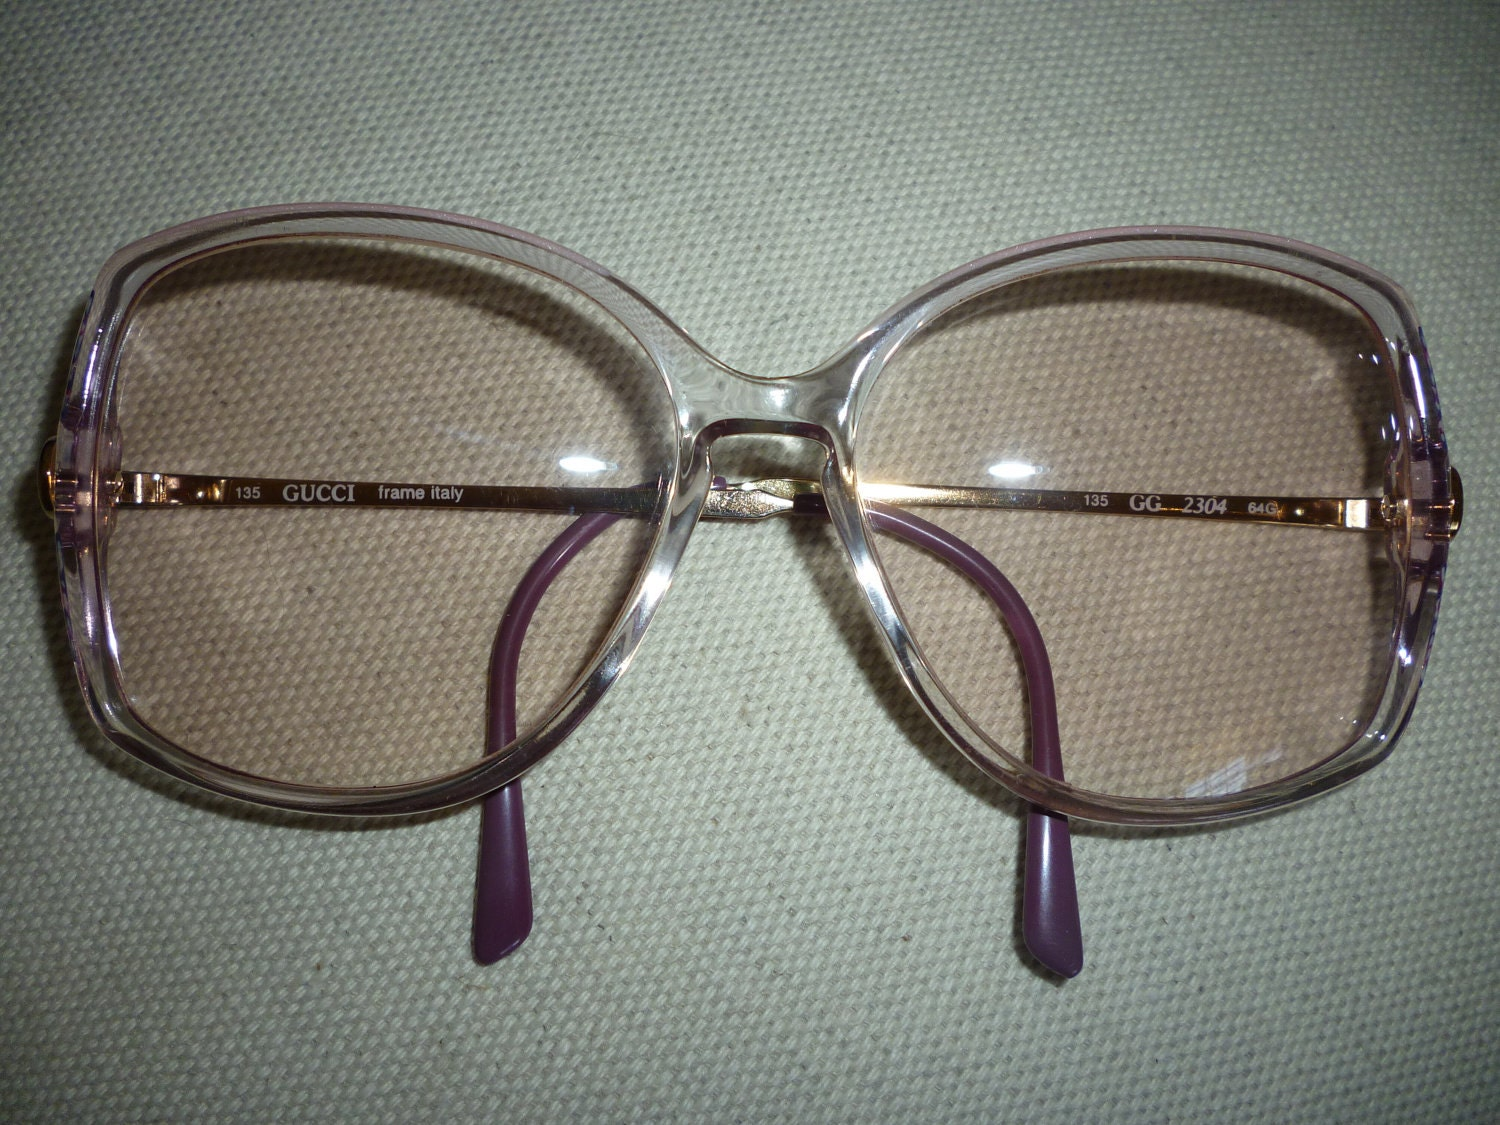 Vintage Gucci Glasses Frame : Vintage Gucci Eye Glasses